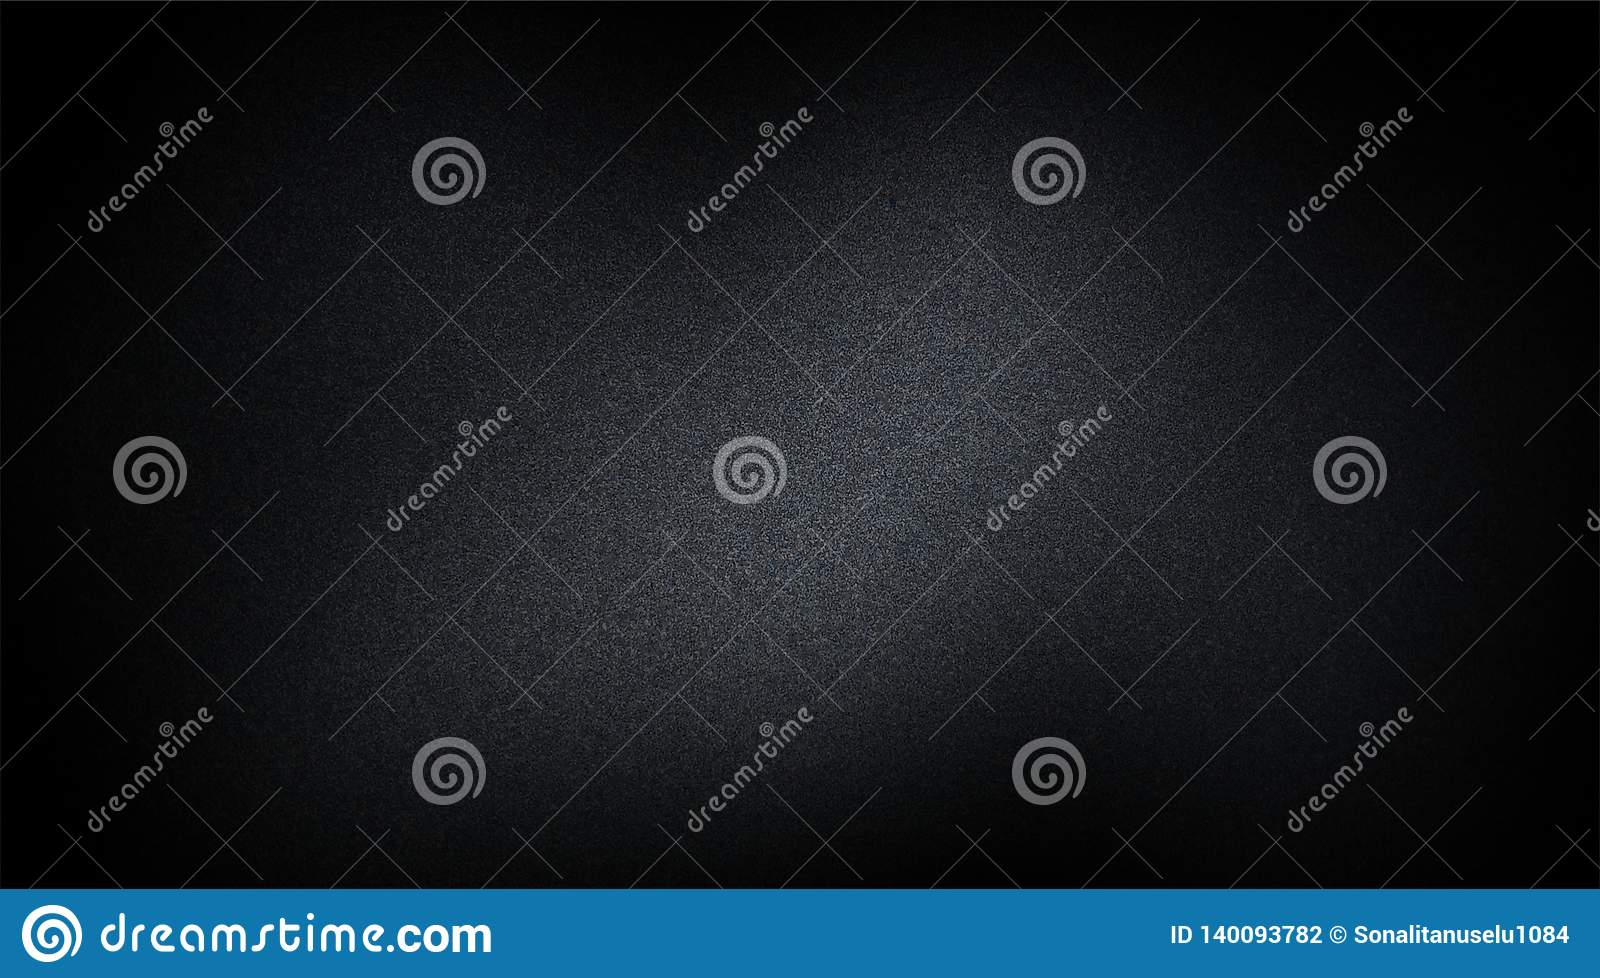 Abstract Black Shaded Textured Background Paper Grunge